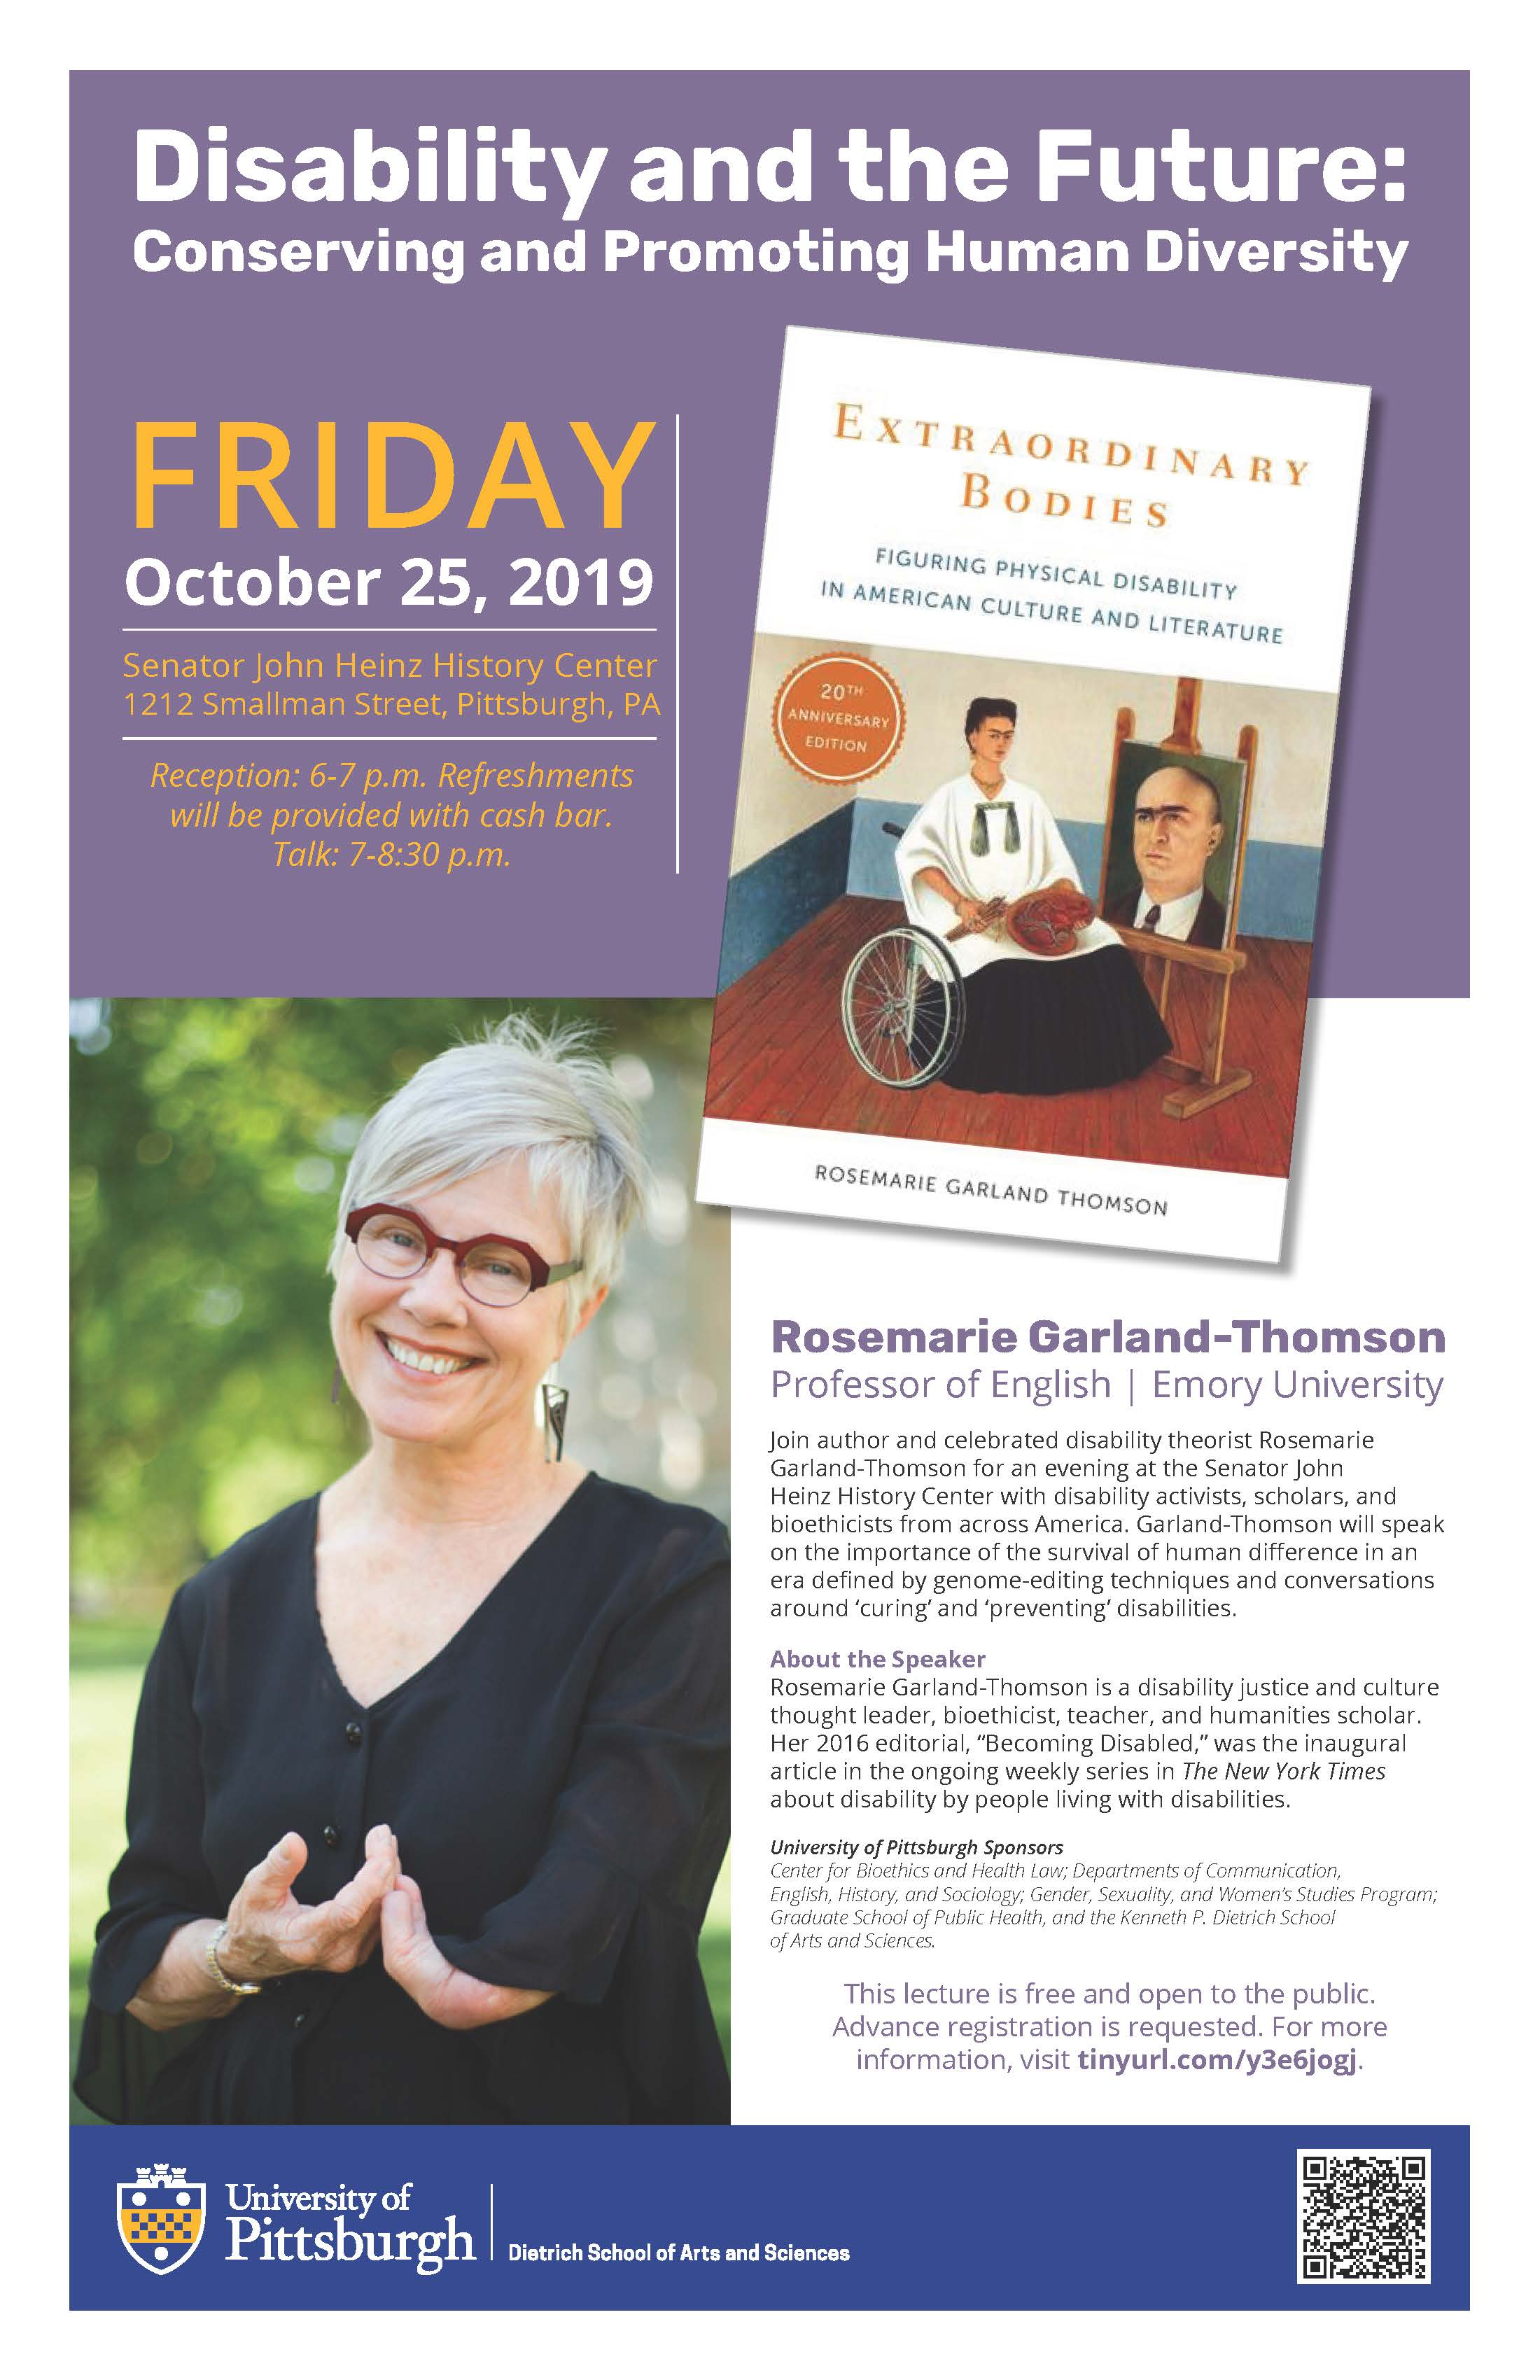 Rosemaries Garland Thomson is a disability justice and culture brought leader, bioethicist, teacher and humanities scholar. Please see the description of the event date and time for more details.